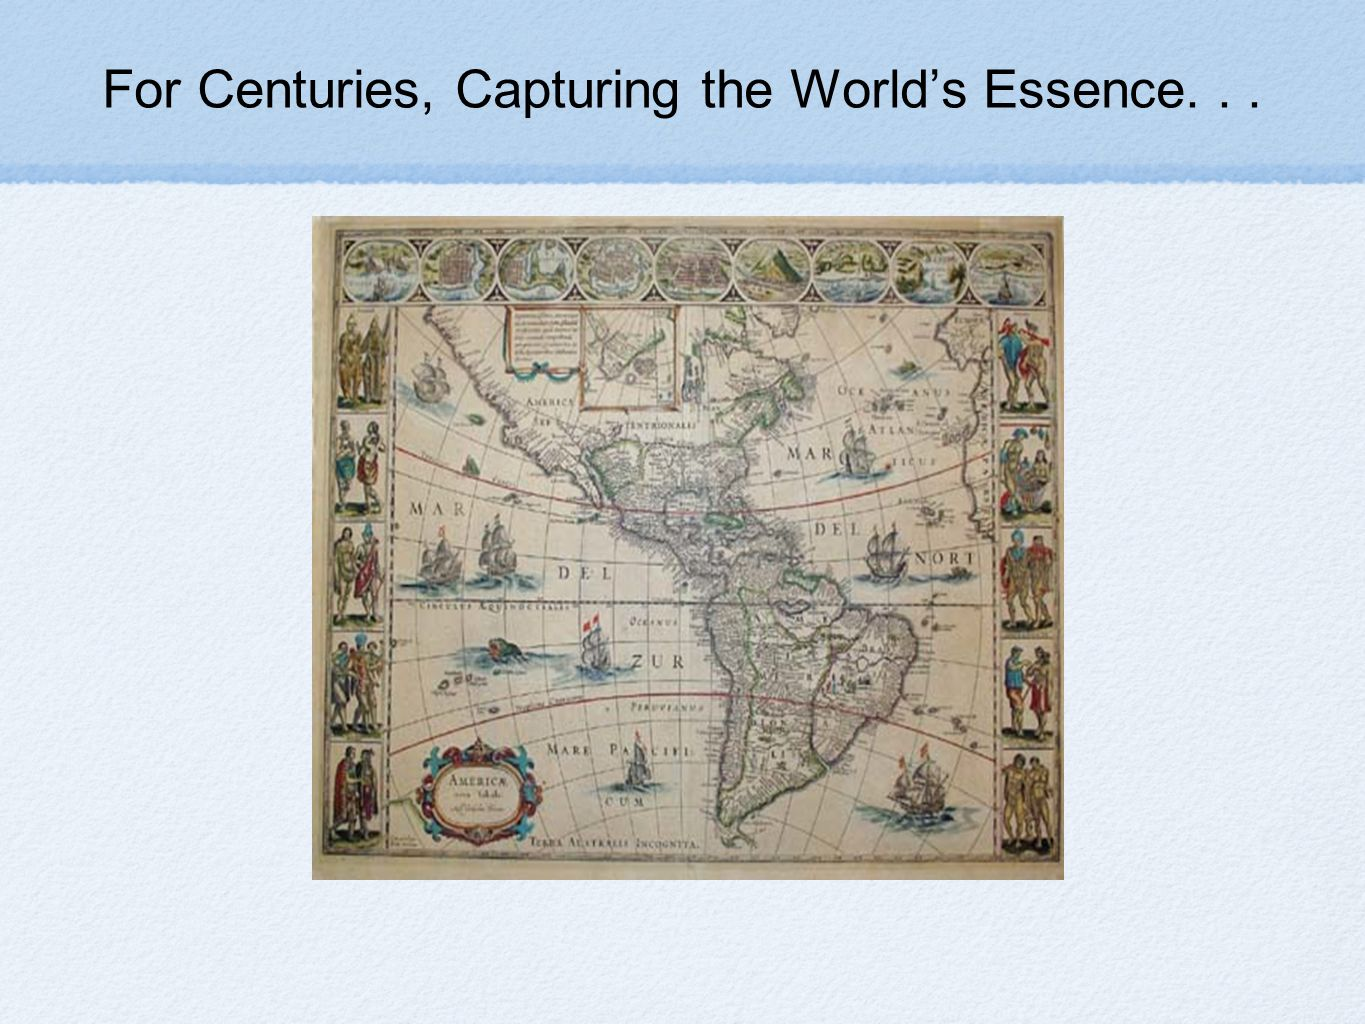 For Centuries, Capturing the Worlds Essence...